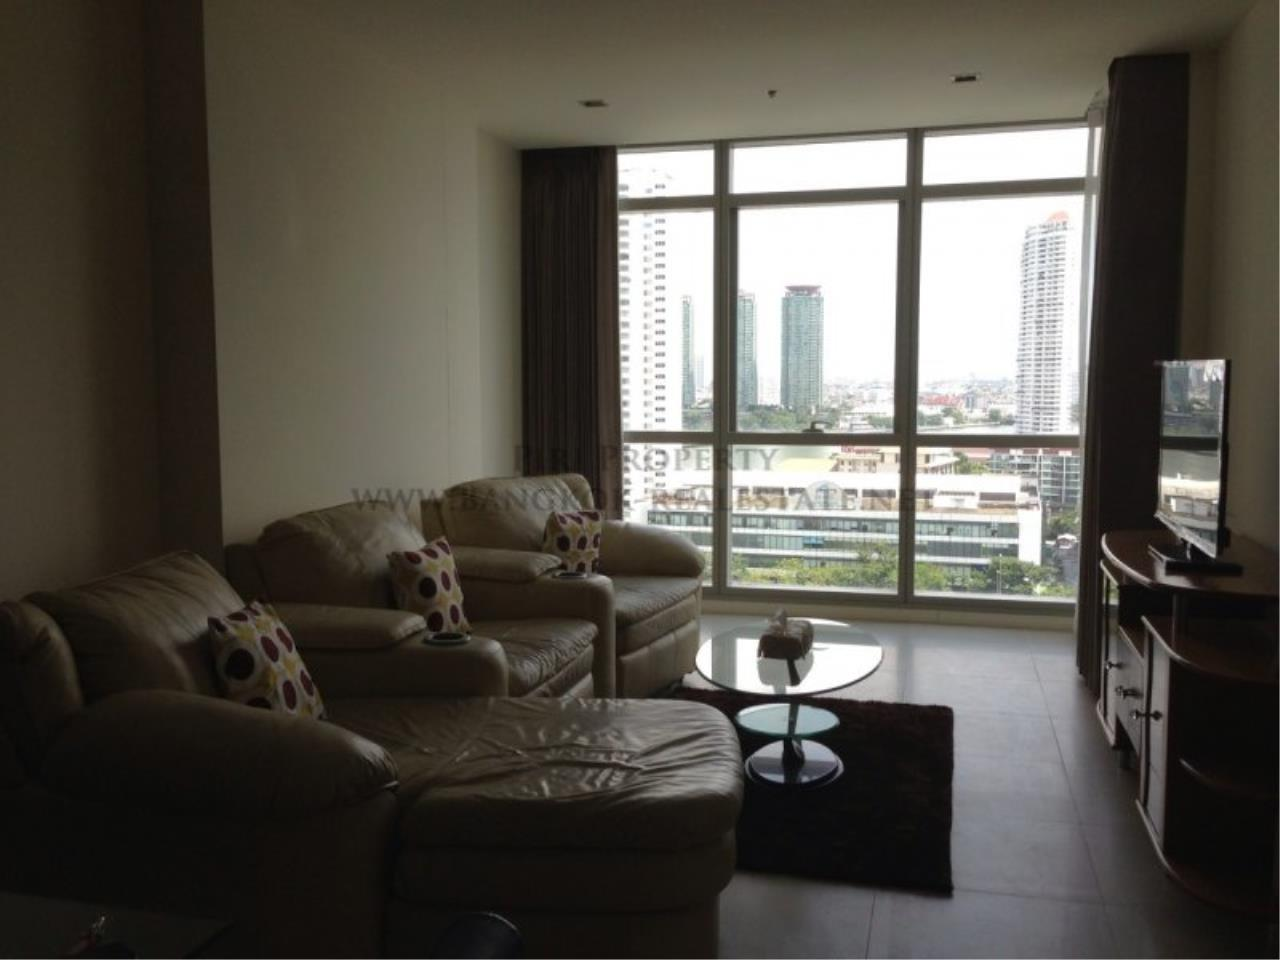 Piri Property Agency's The River Condo - 1 Bedroom - 17th Floor - Fully furnished 1